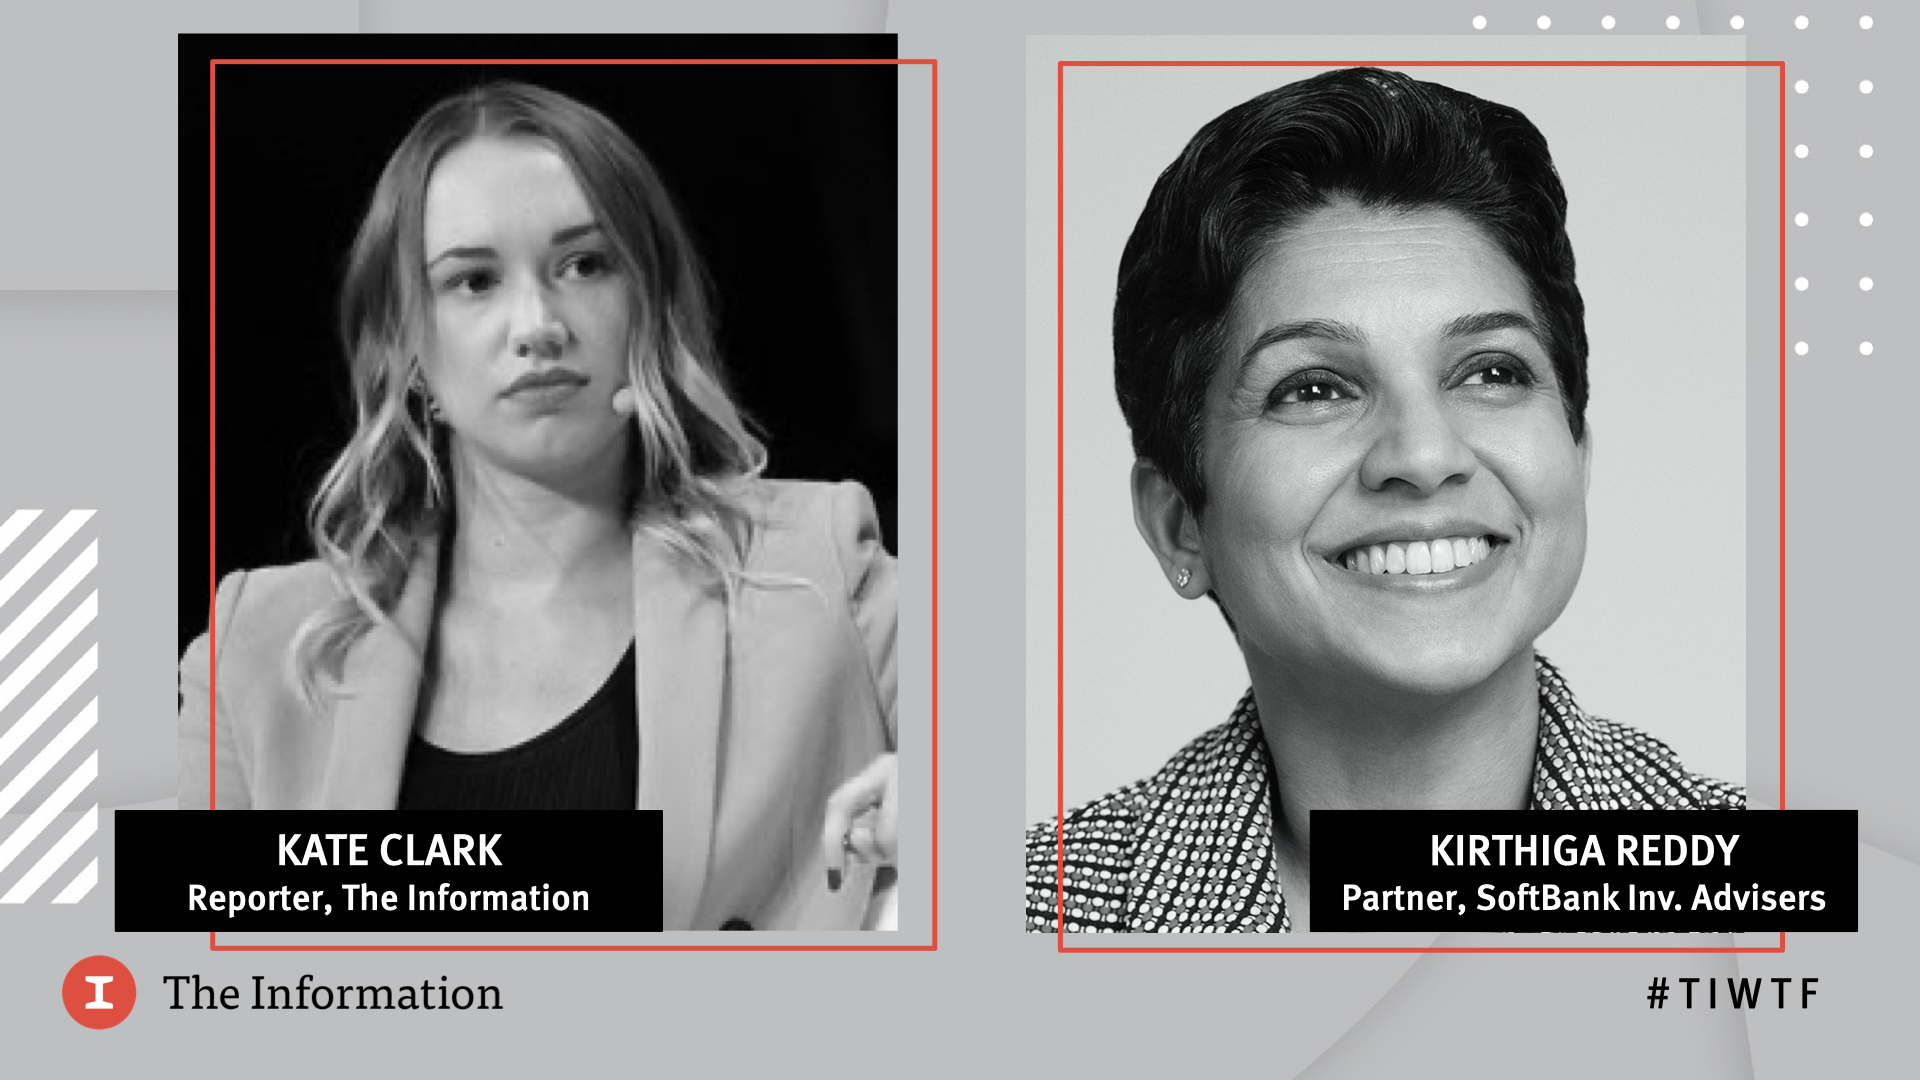 WTF 2020 - SoftBank Investment Advisers' Partner Kirthiga Reddy in conversation with Kate Clark, Reporter at The Information